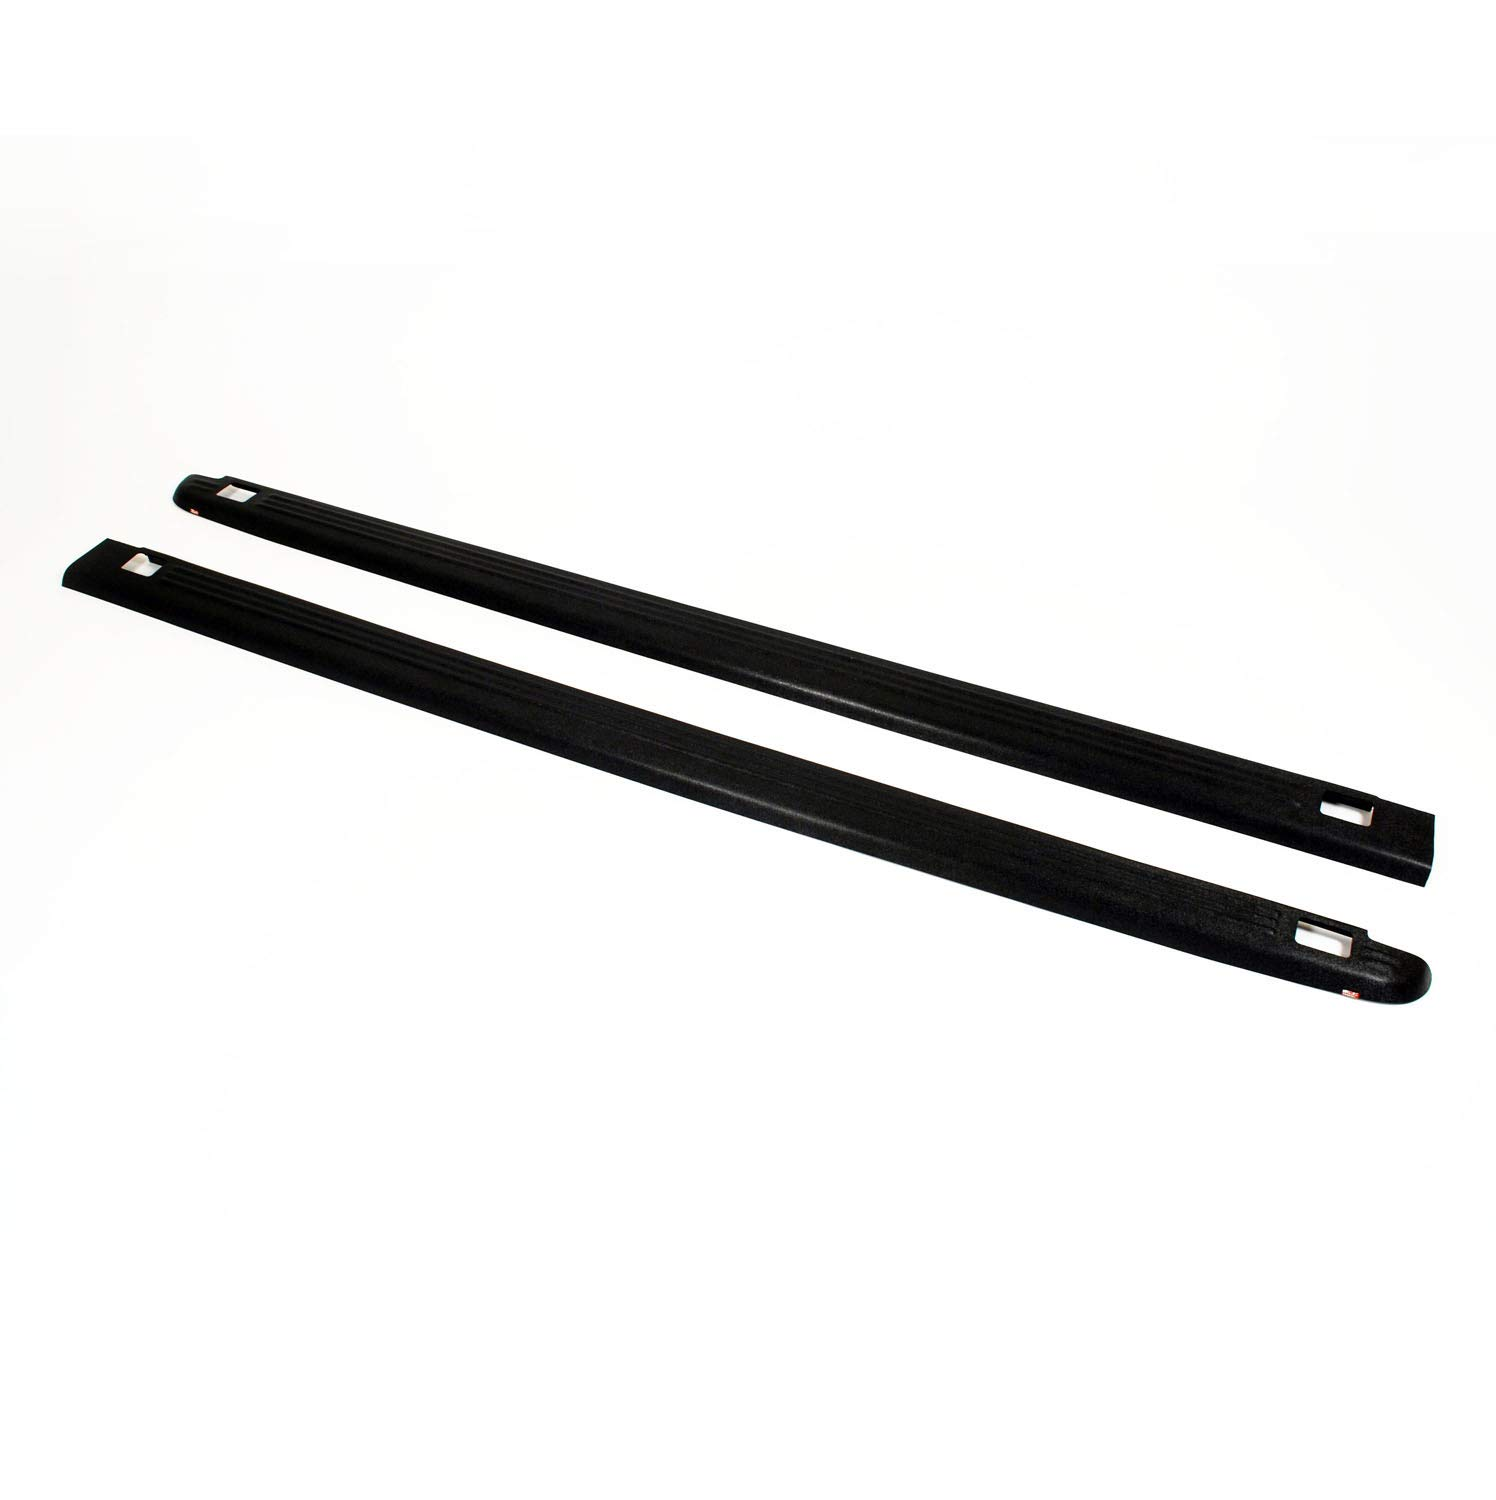 Wade 72-01111 Truck Bed Rail Caps Black Ribbed Finish with Stake Holes for 1988-1998 Chevrolet GMC 1500 2500 3500 with 6.5ft bed (Set of 2) Westin